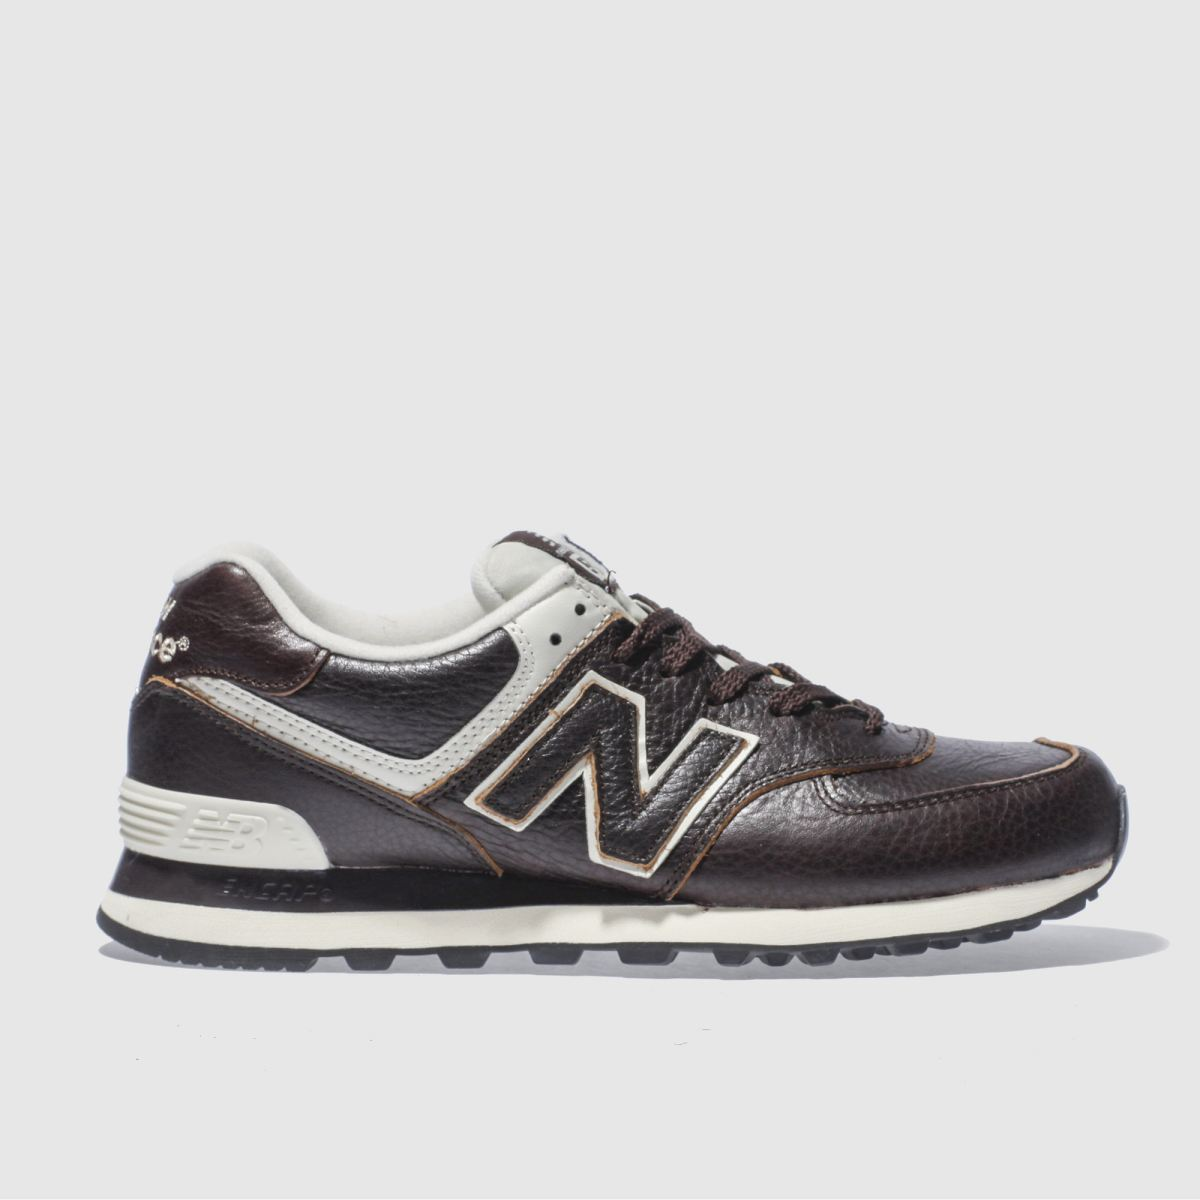 New Balance Dark Brown 574 Trainers